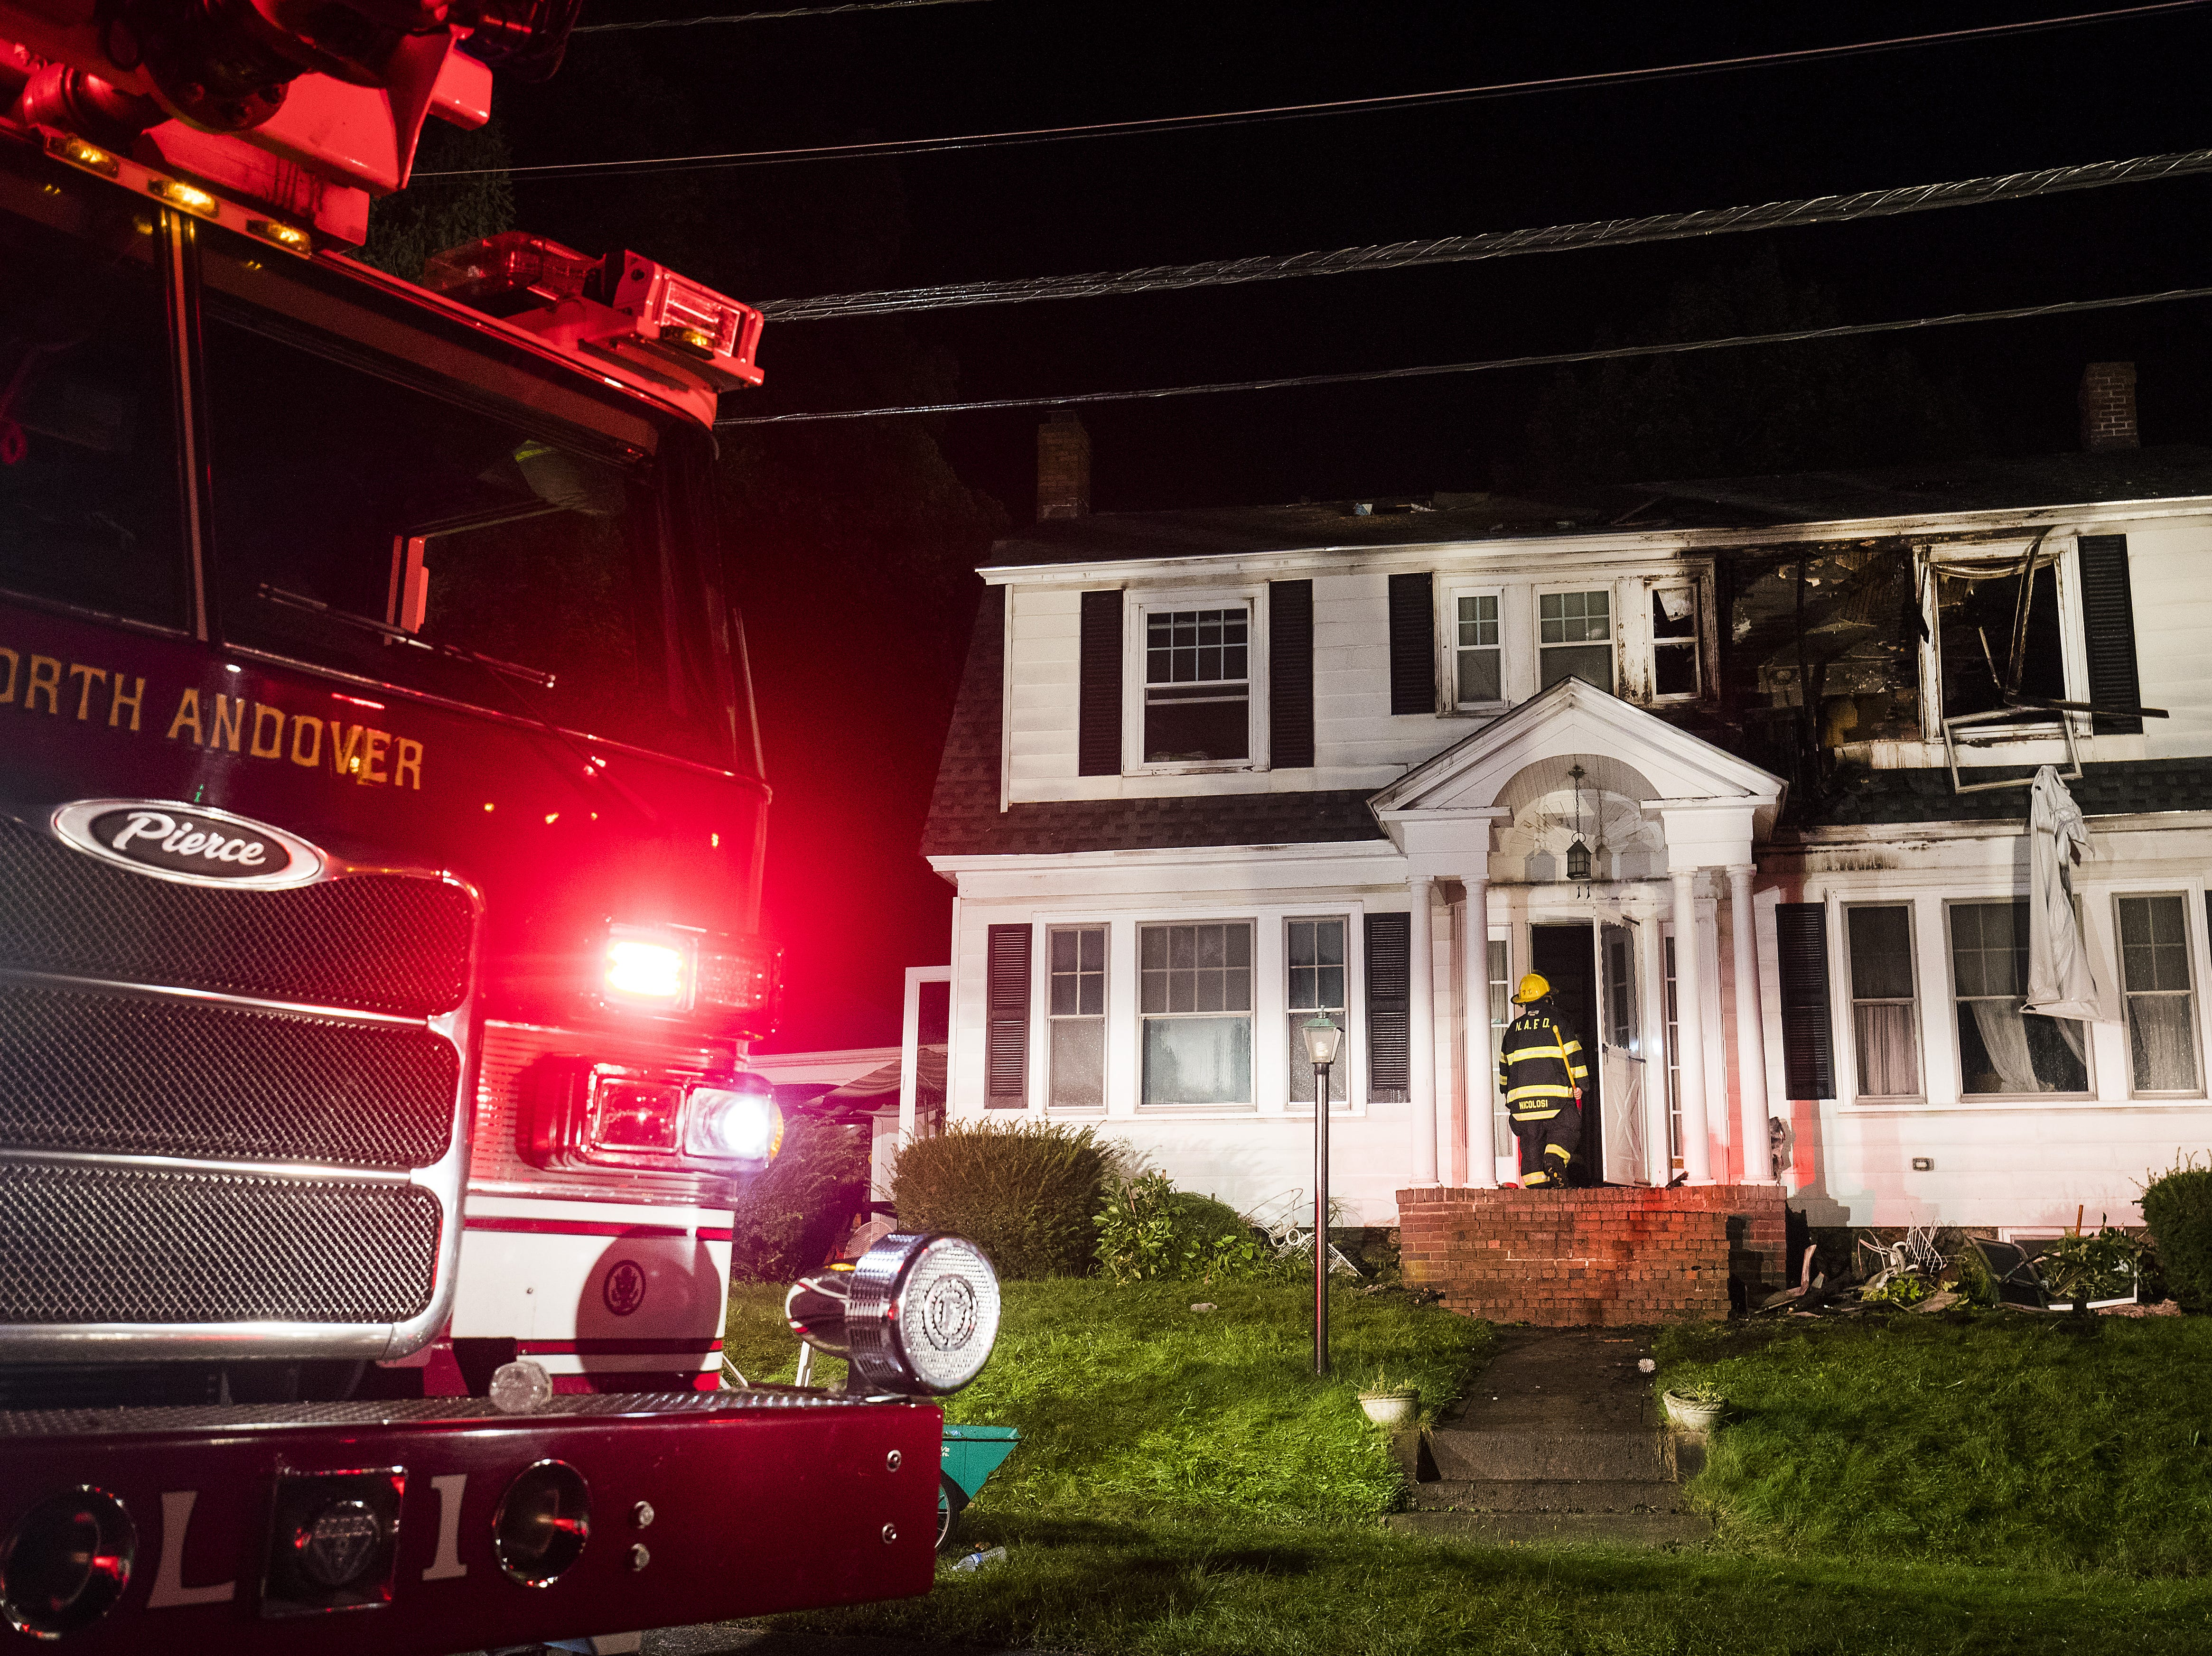 NORTH ANDOVER, MA - SEPTEMBER 13:  Firefighters inspect a home after gas explosions on September 13, 2018 in North Andover, Massachusetts. Gas explosions in three communities north of Boston have left multiple homes on fire.